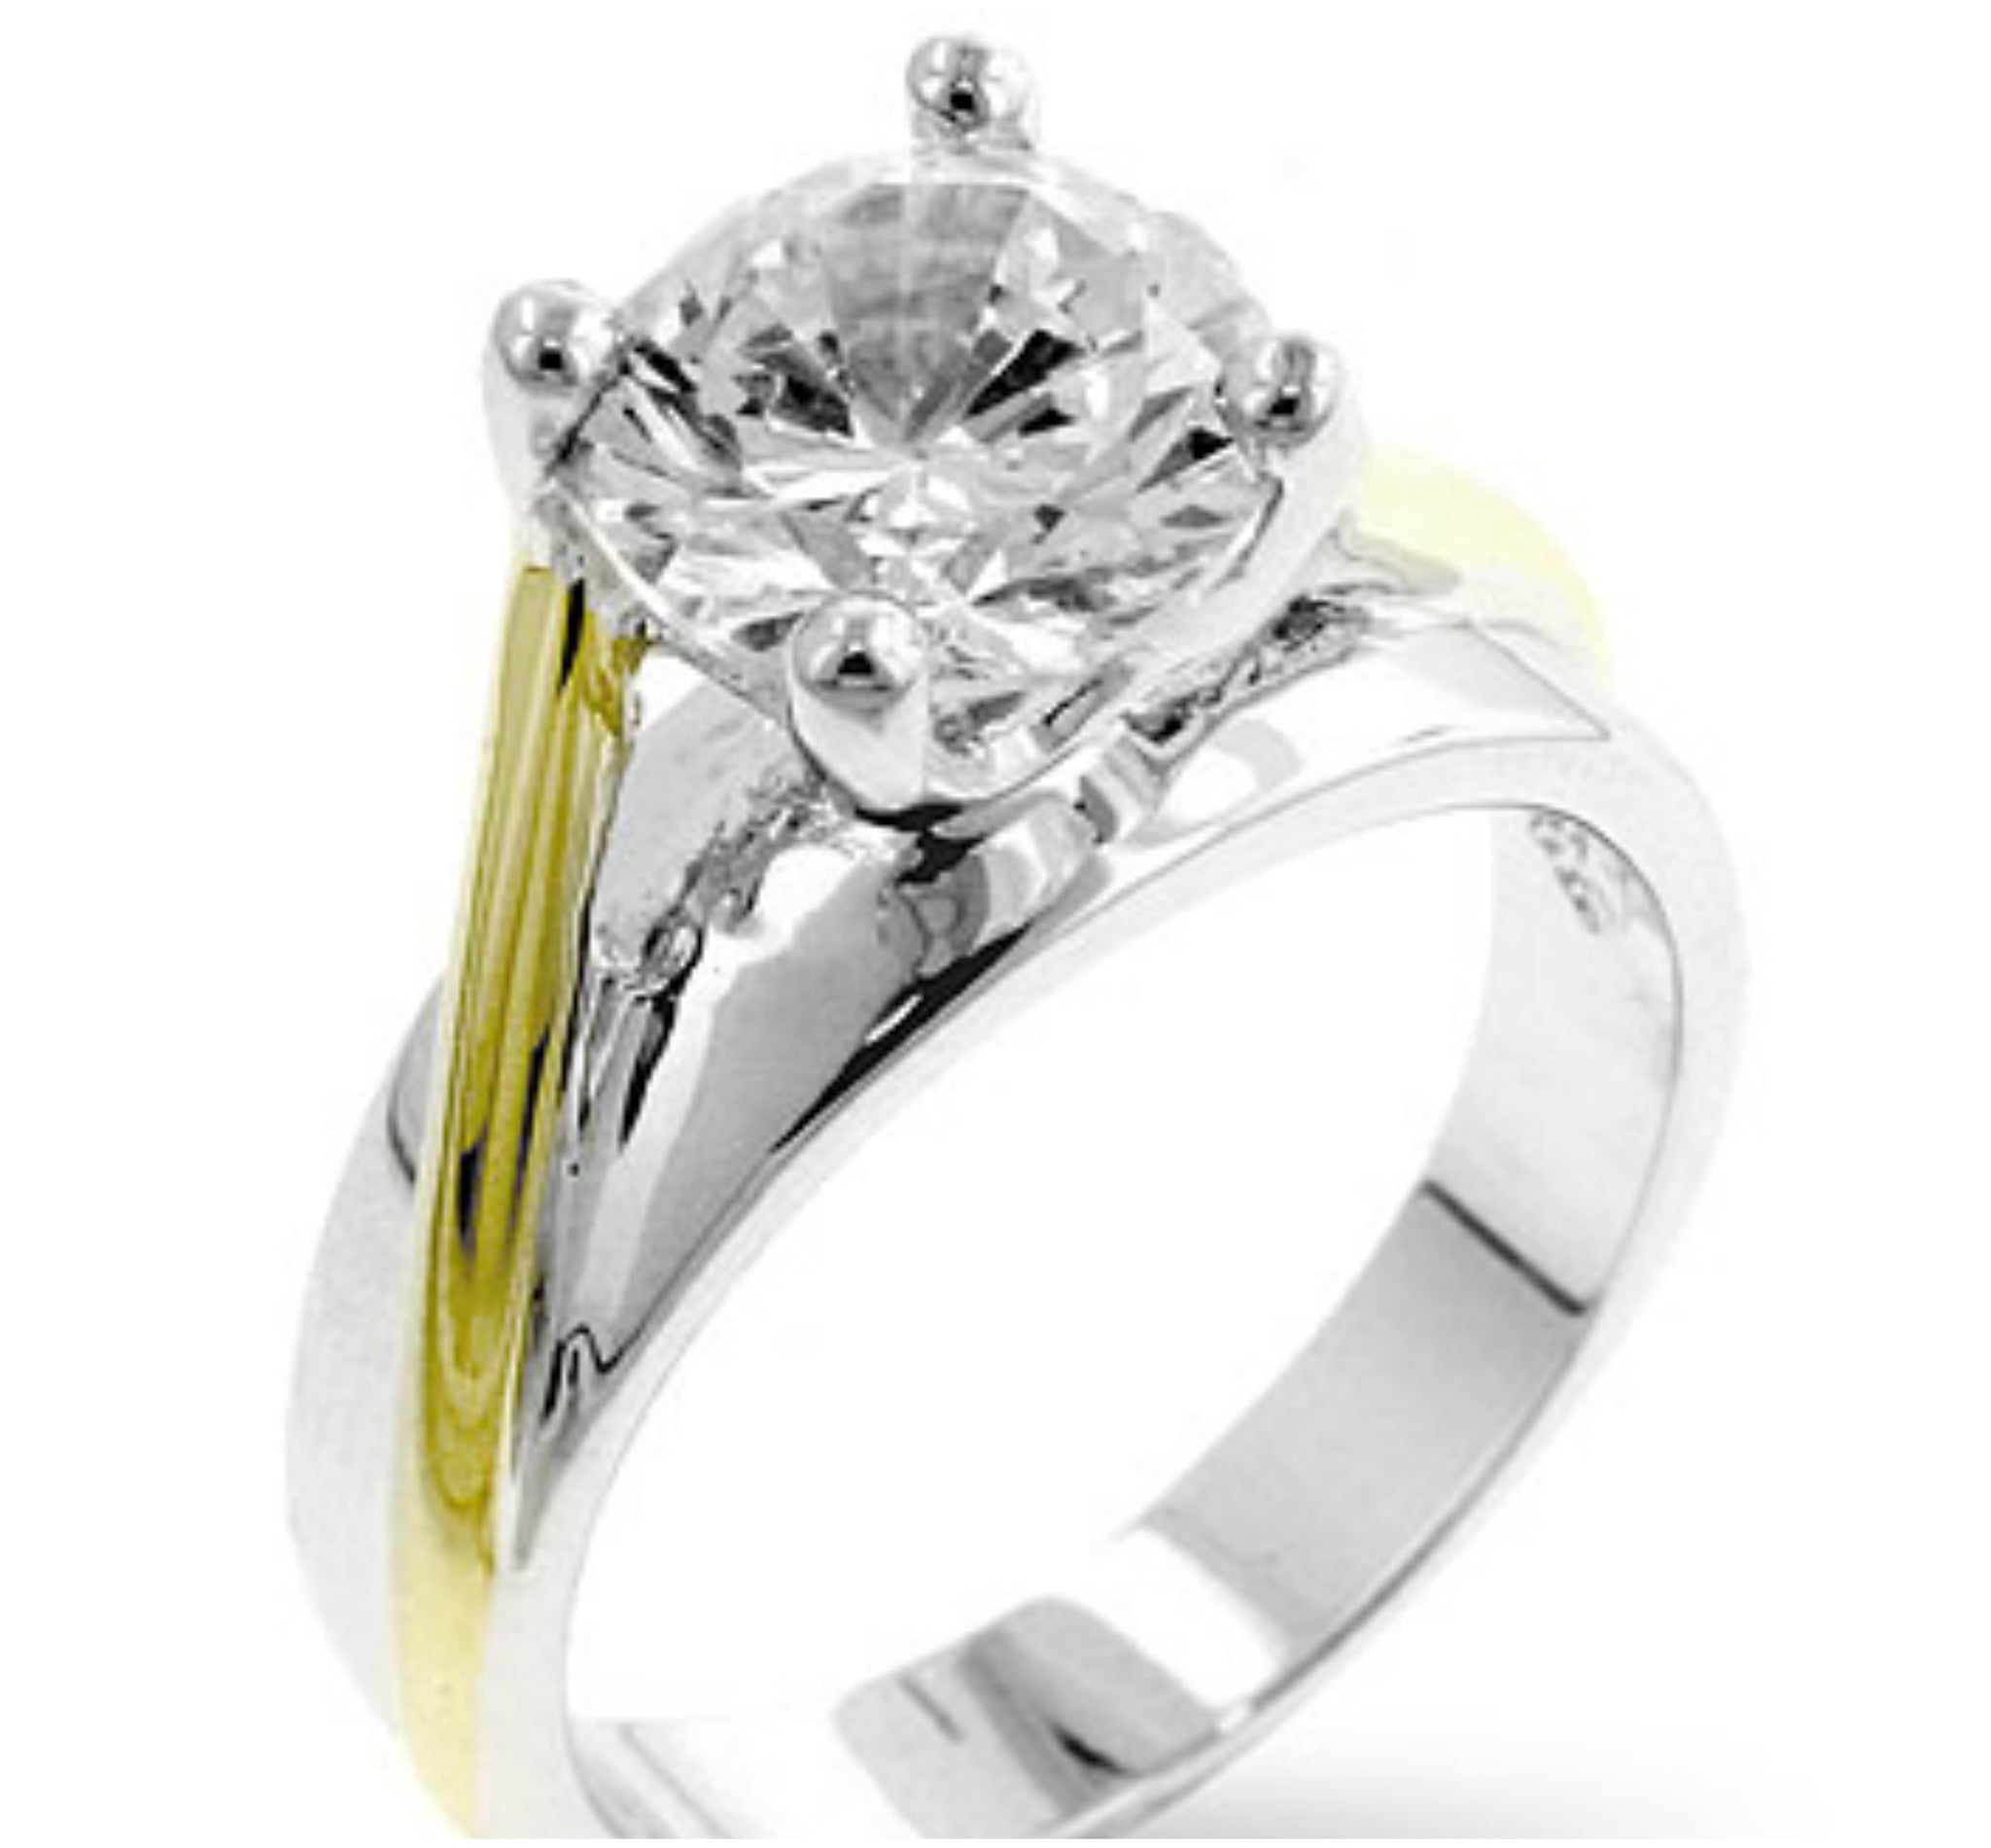 promise new melody rings walmart wedding keepsake engagement diamond faux